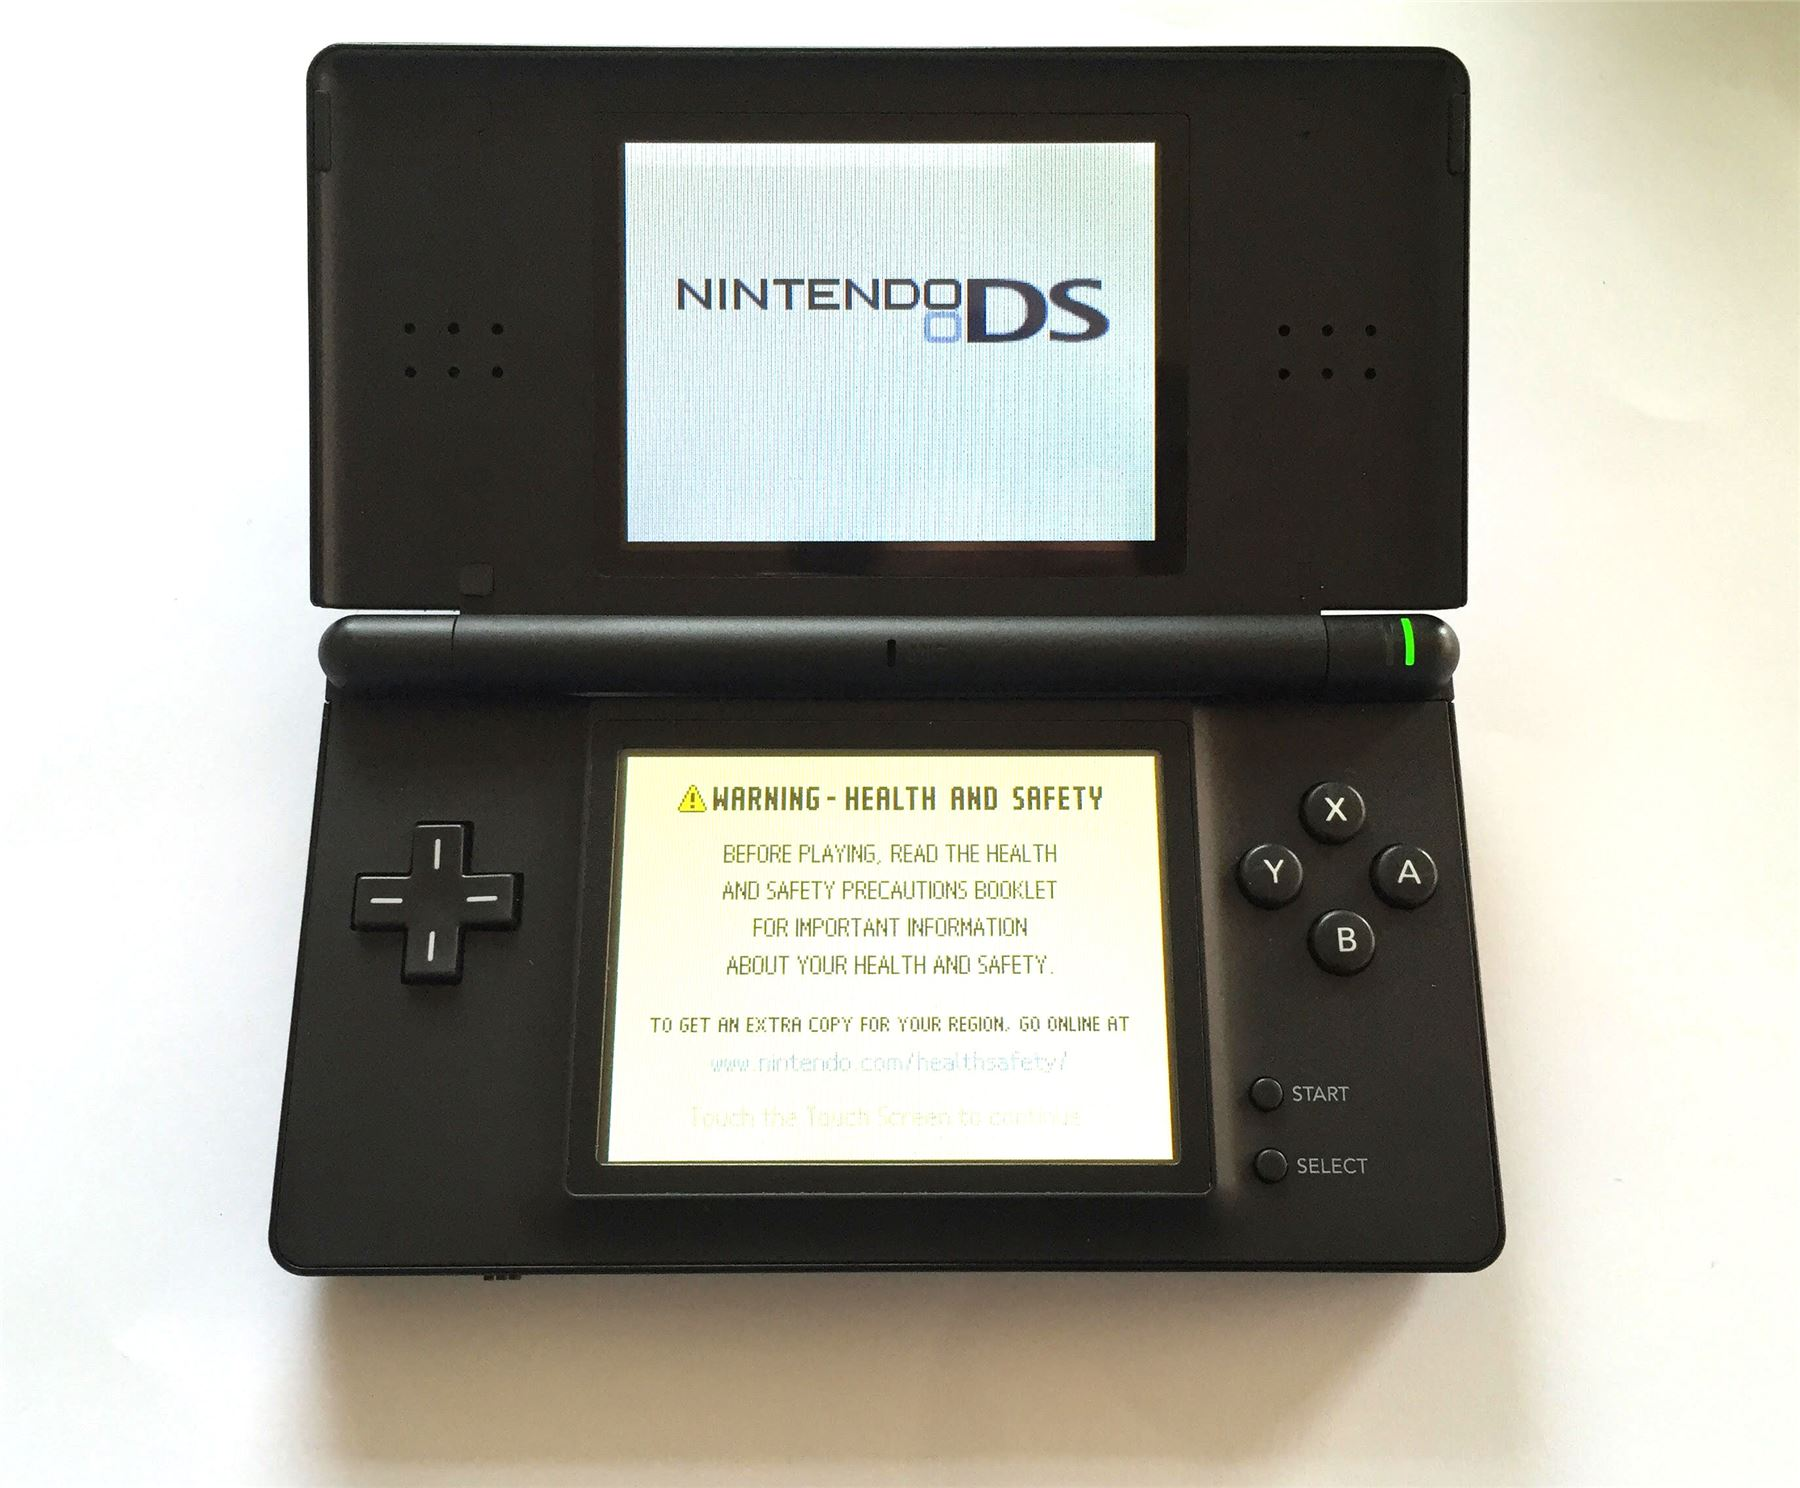 Nintendo-DS-Lite-Console-Handheld-Video-Game-System-NDSL-DS-NDS-DSL-8-Colours thumbnail 15